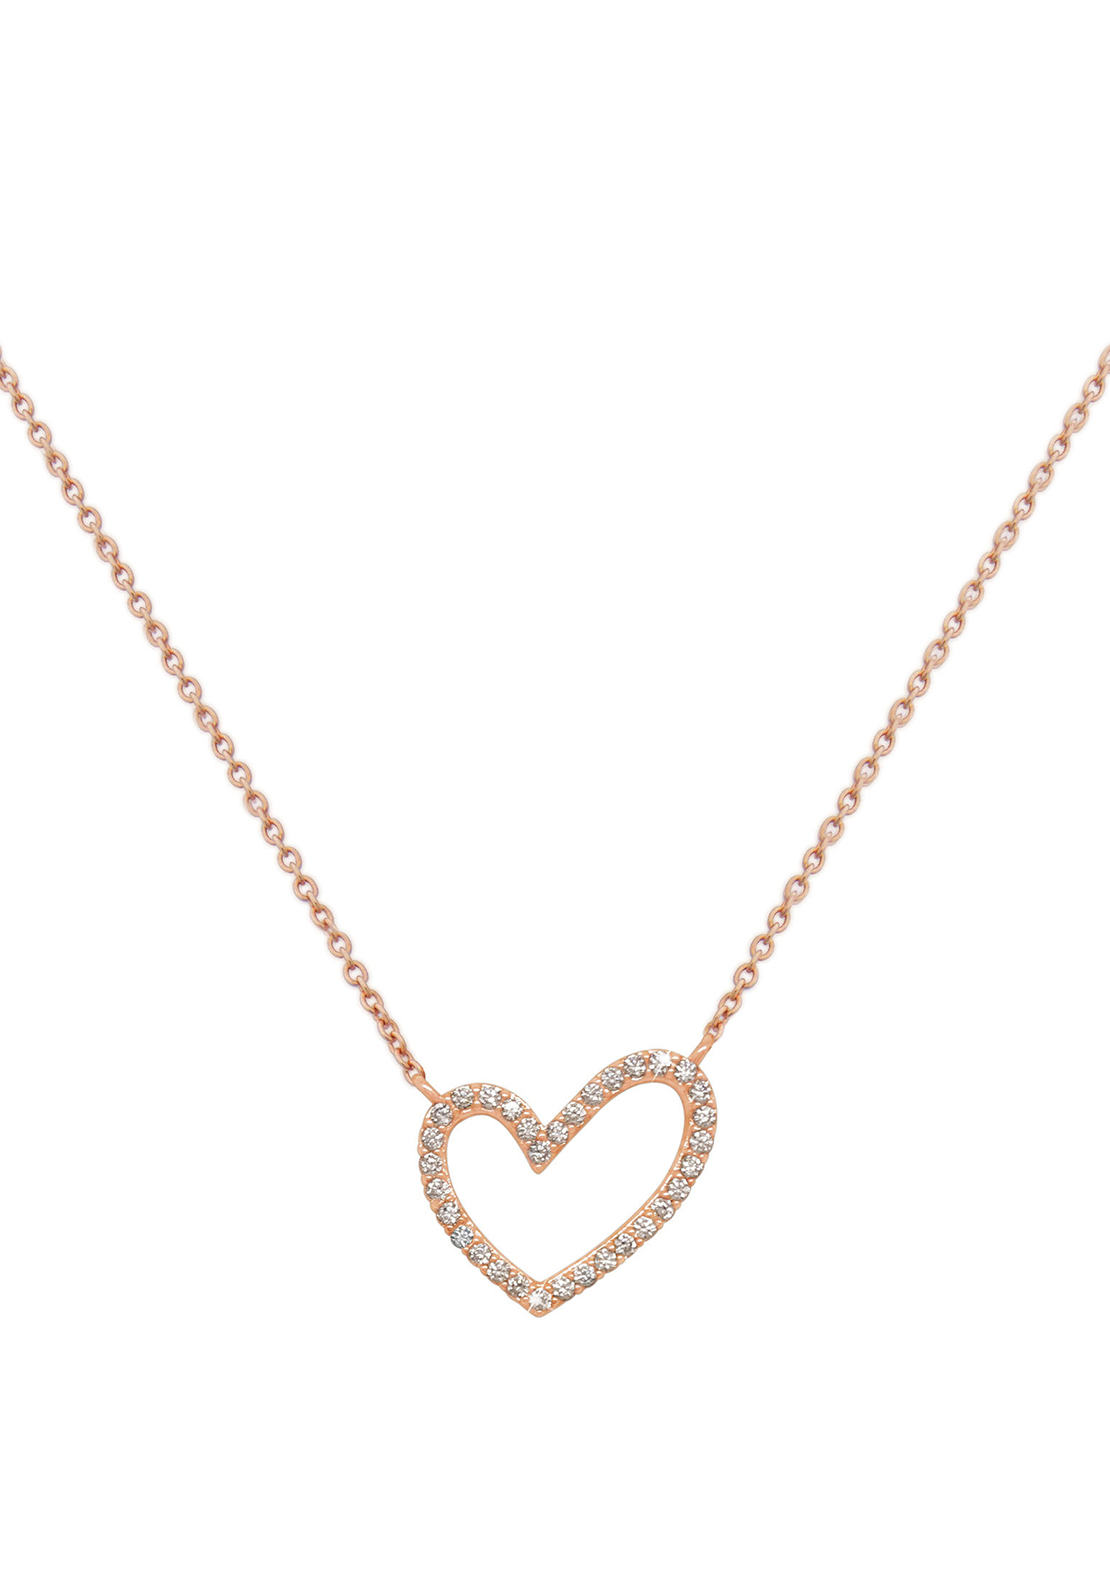 Tipperary Crystal Crystal Heart Pendant, Necklace, Rose Gold